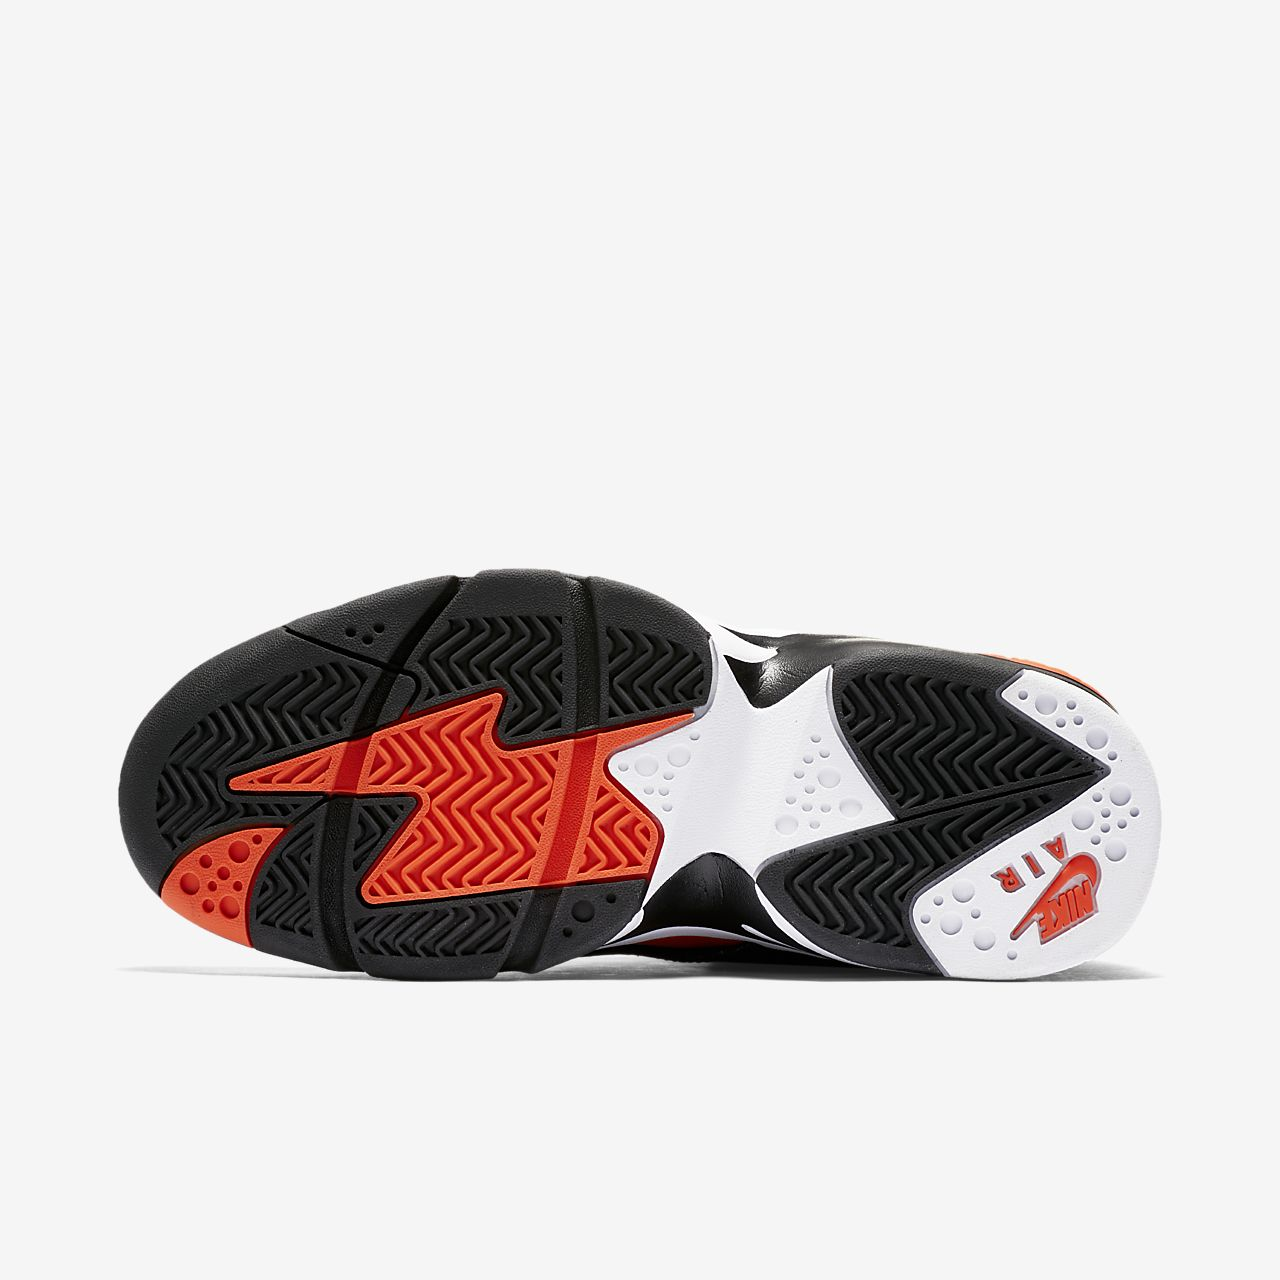 07d00478cdb3 ... Black amp White  great site for all shoes half off ... Nike Air Maestro  II LTD Mens ...